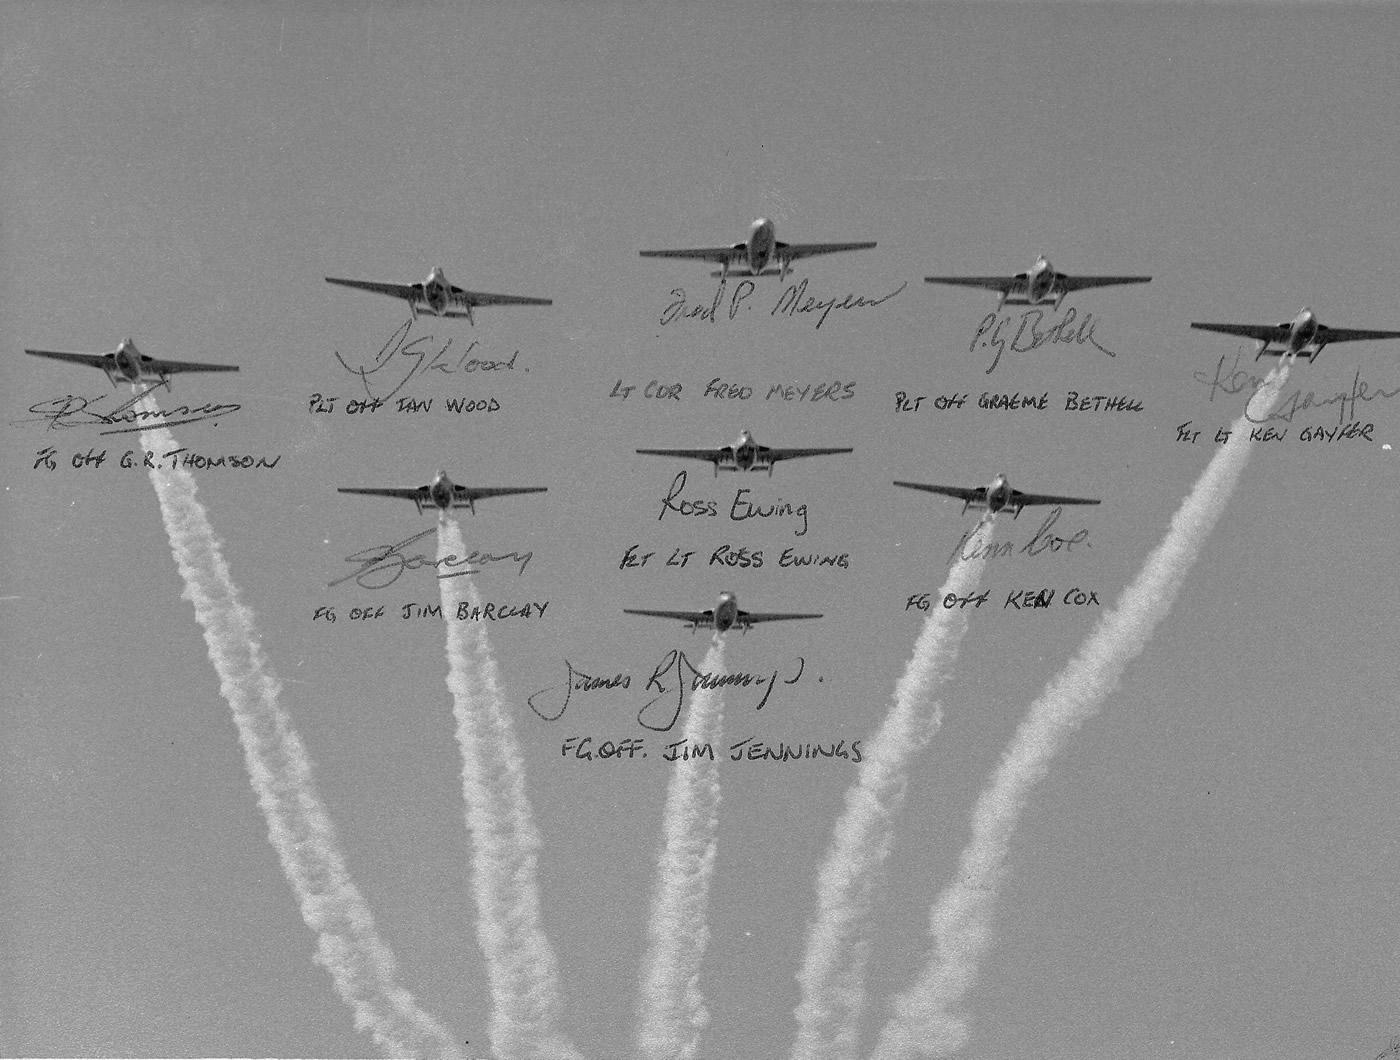 75 Sqn Diamond 9 Flypast Civic Ceremony – Gisborne – 9 Oct 69 RNZAF Photo Small